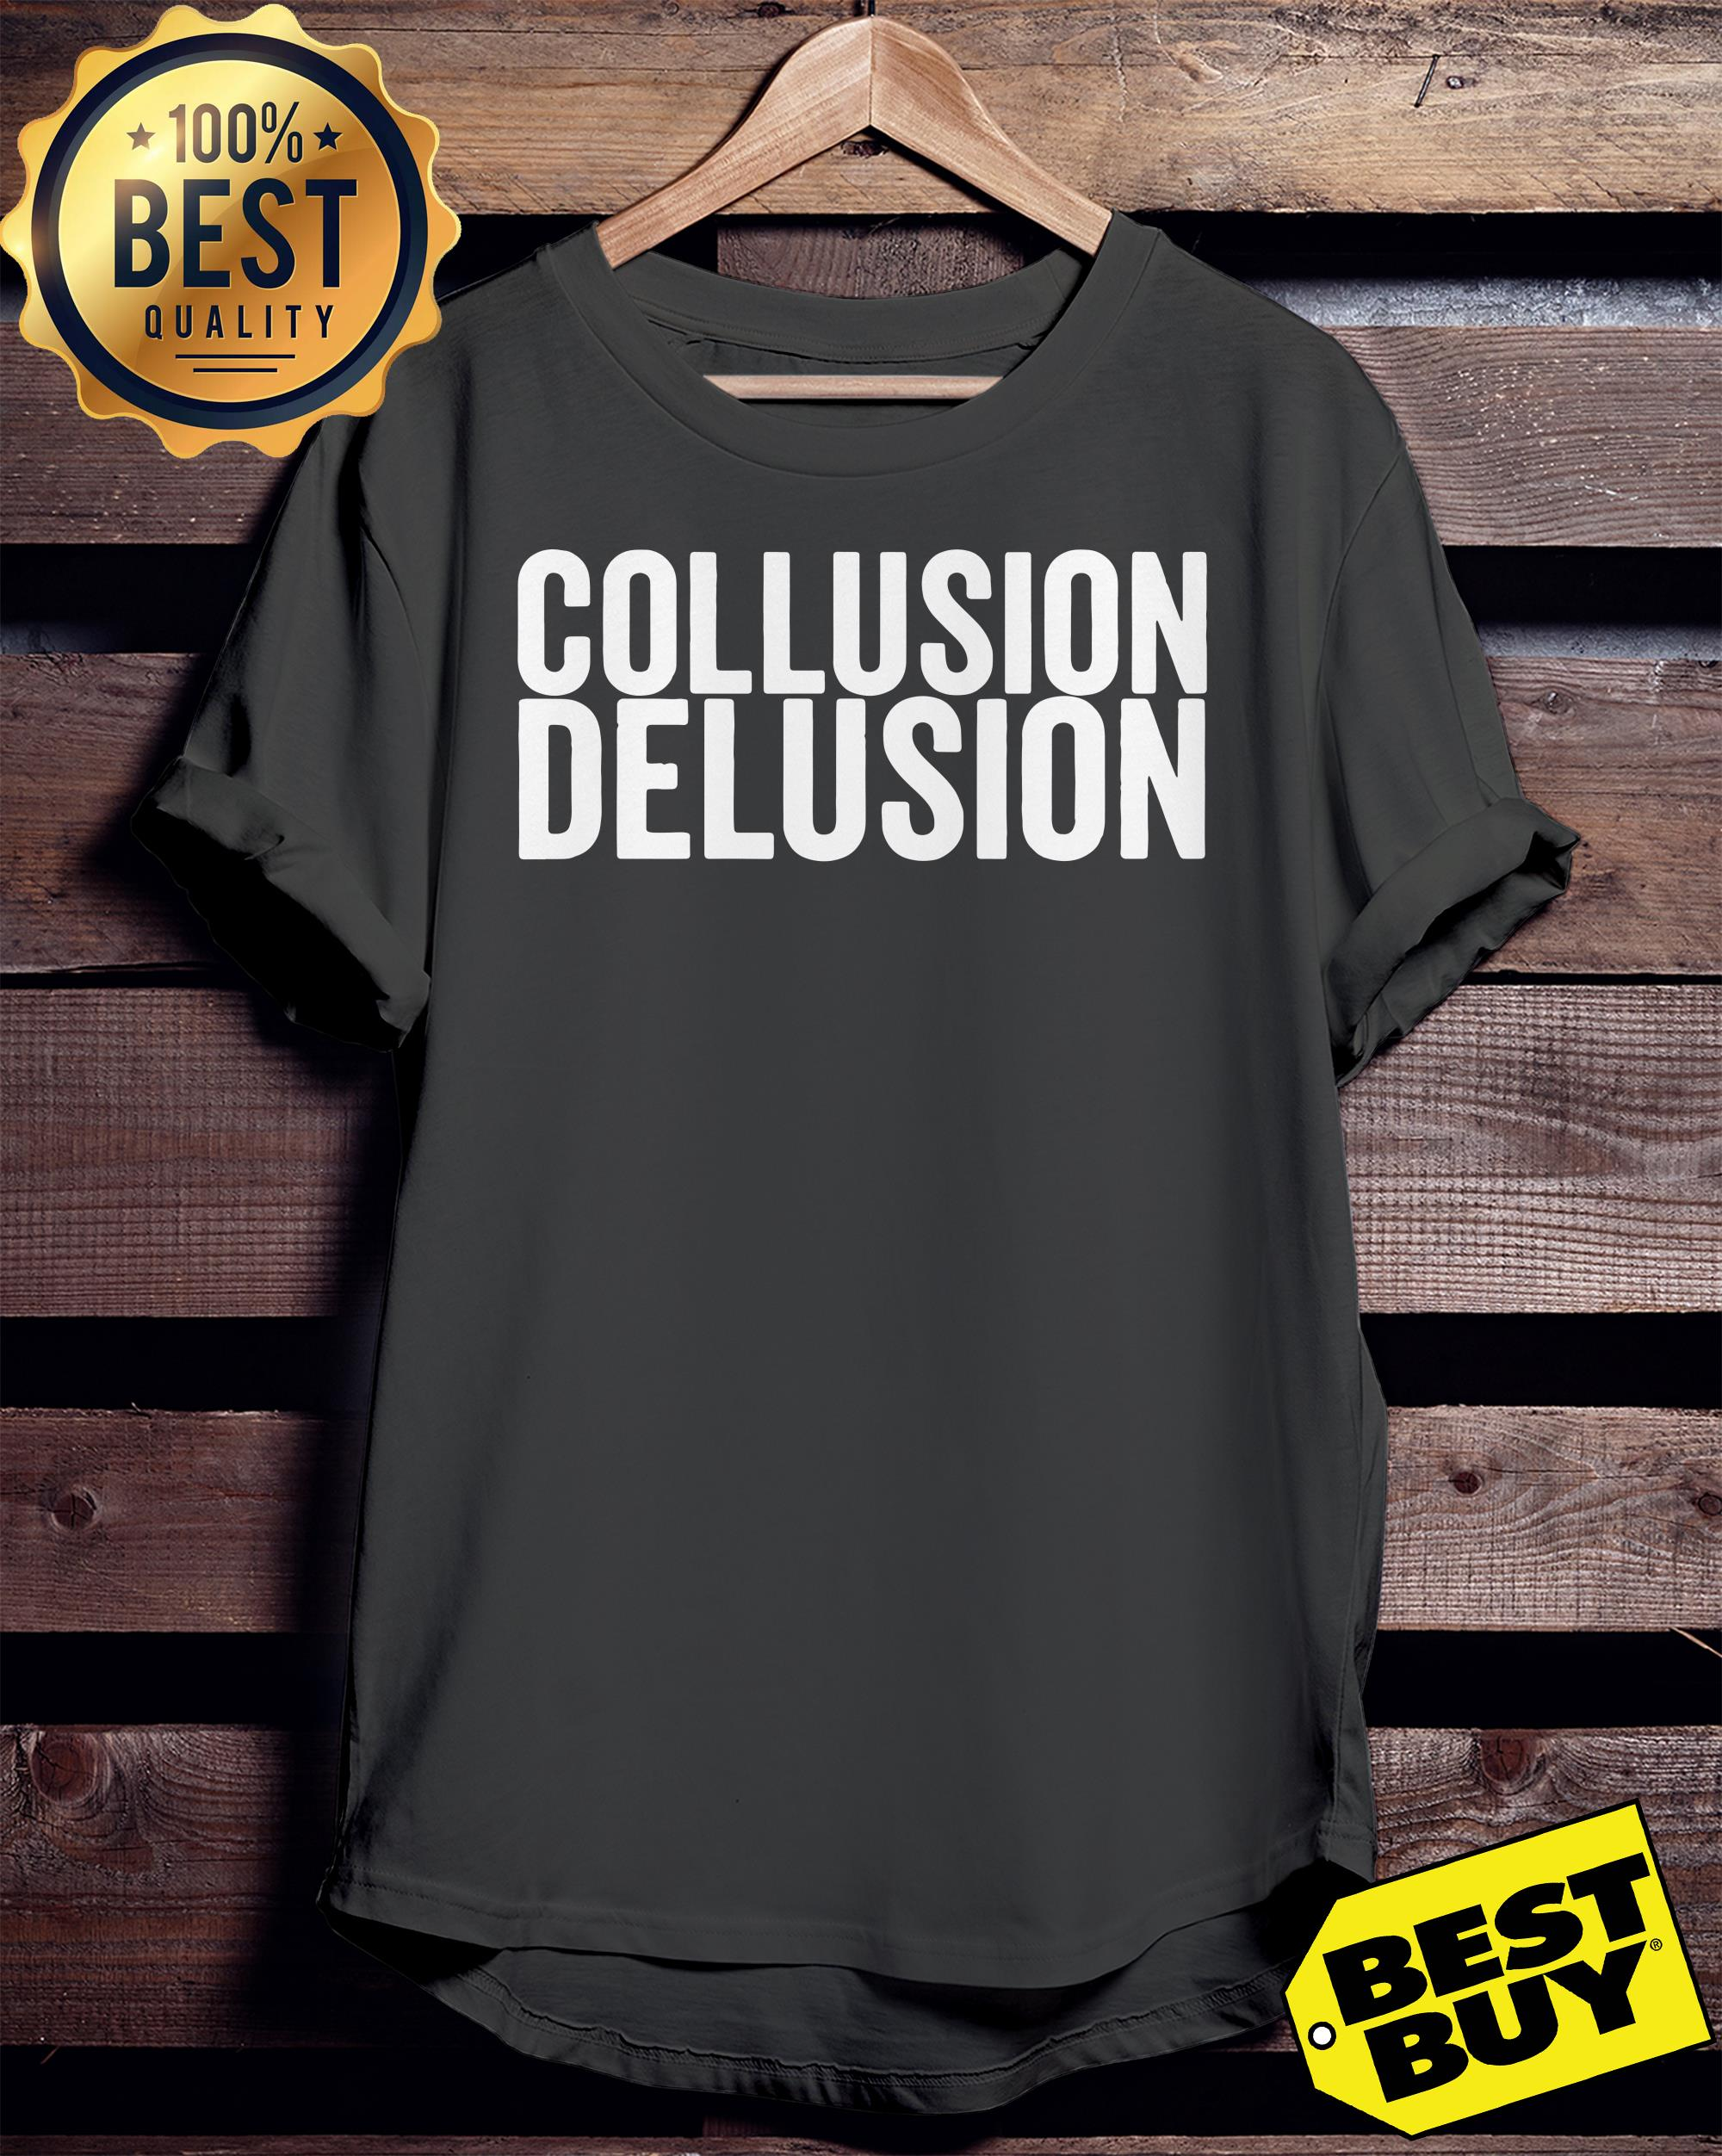 Collusion delusion ladies tee